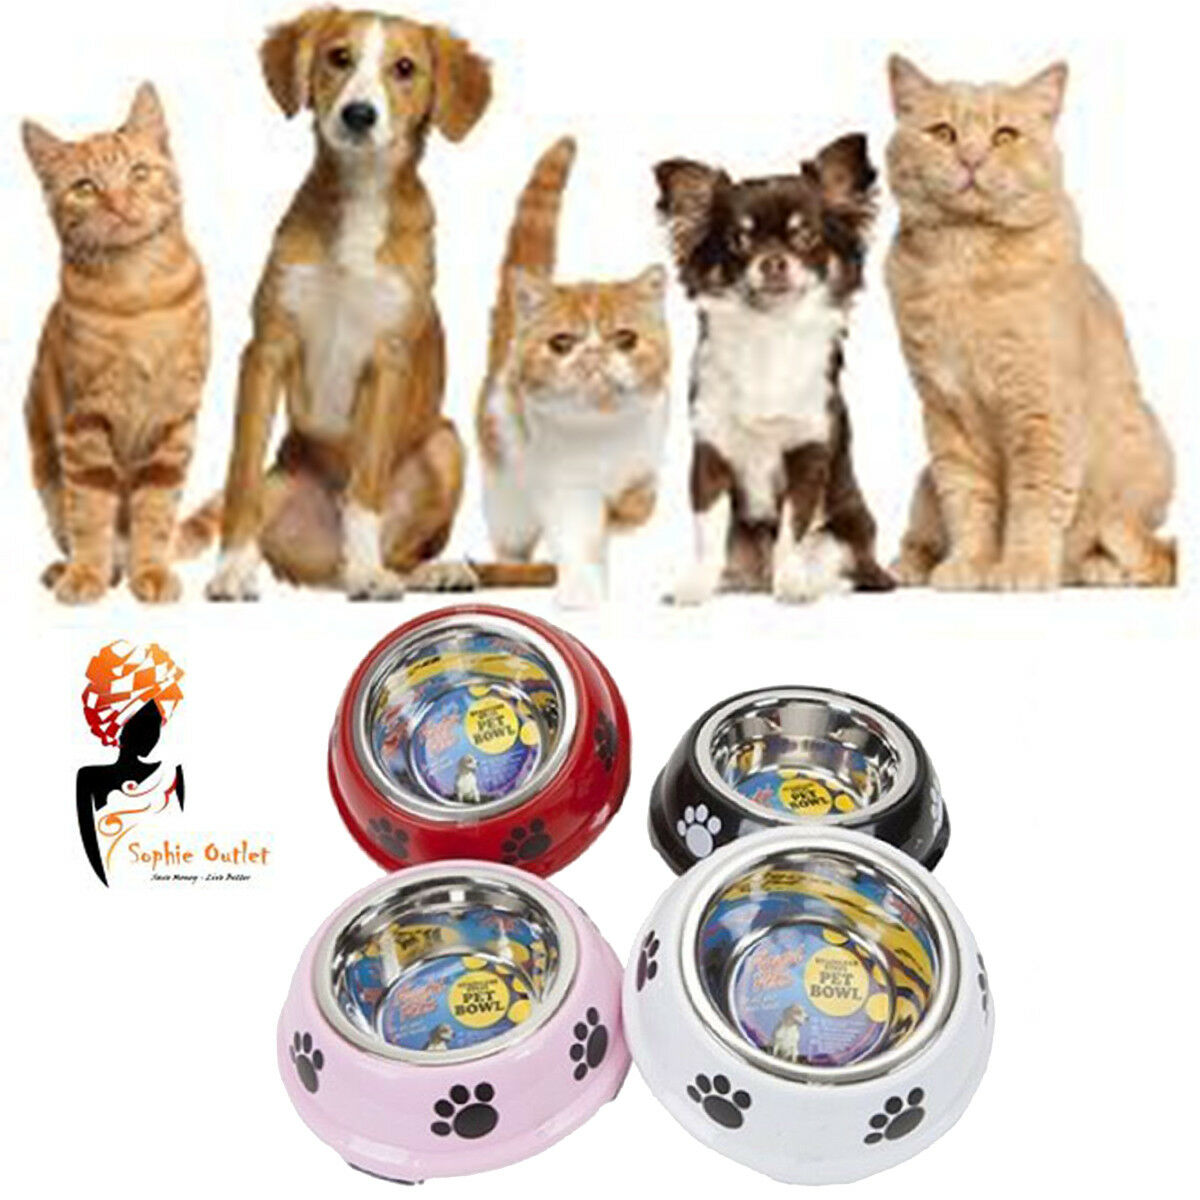 Small Stainless Steel Non Slip Pet Bowl Dog Cat Puppy Paws Food Water Feed Dish